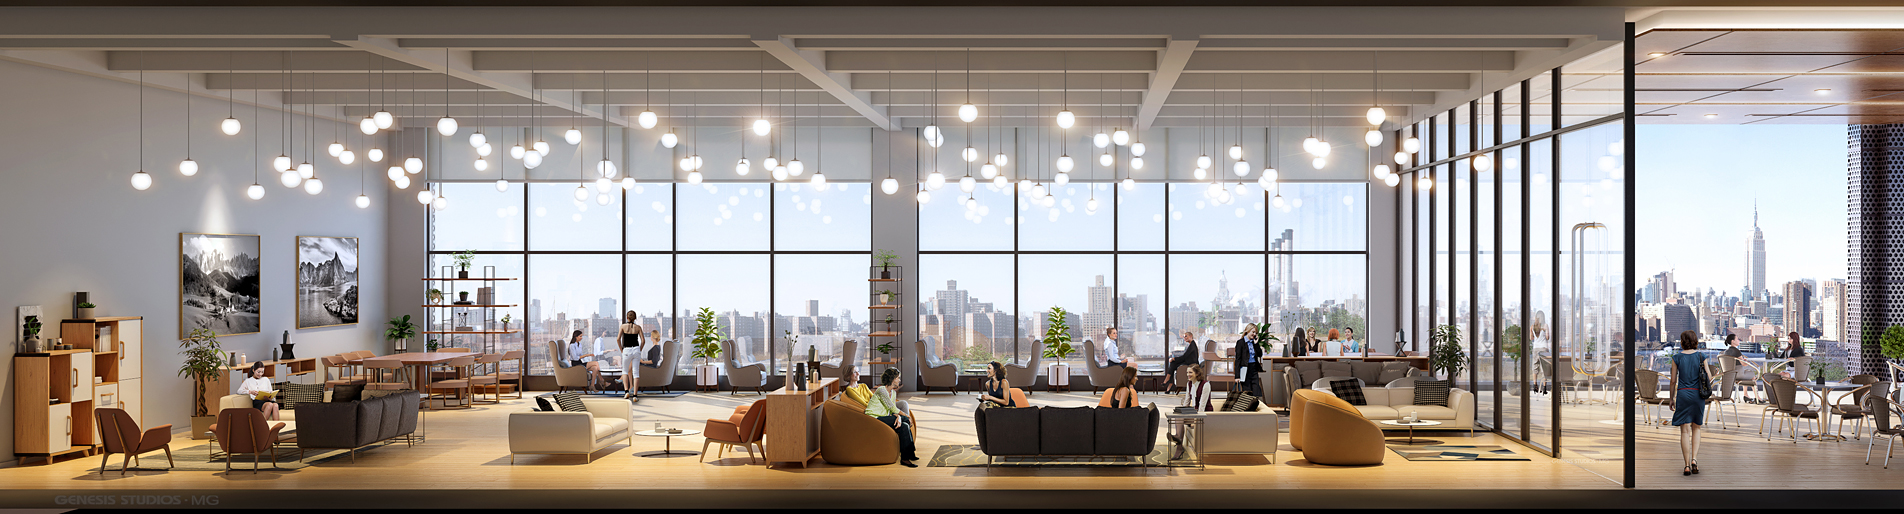 818016- Digital Photorealistic Architectural Renderings of Storm Living Interior for Zoning and Code Consulting Group